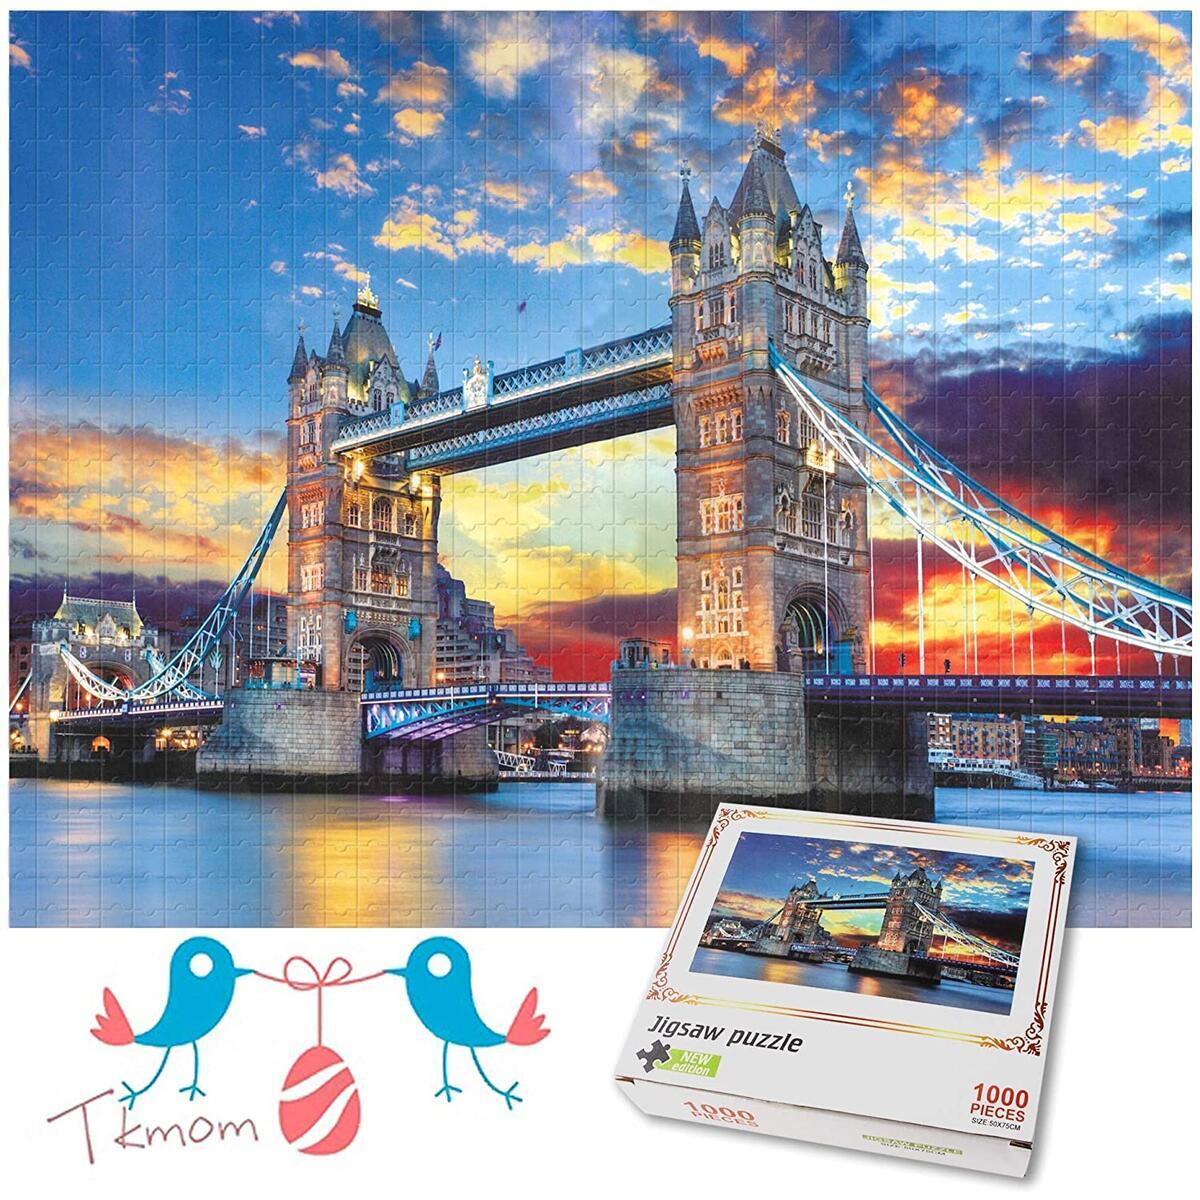 TKmom 1000 Piece Puzzles for Adult,Jigsaw Puzzle London Tower Bridge Educational Intellectual Decompressing Fun Game Gift